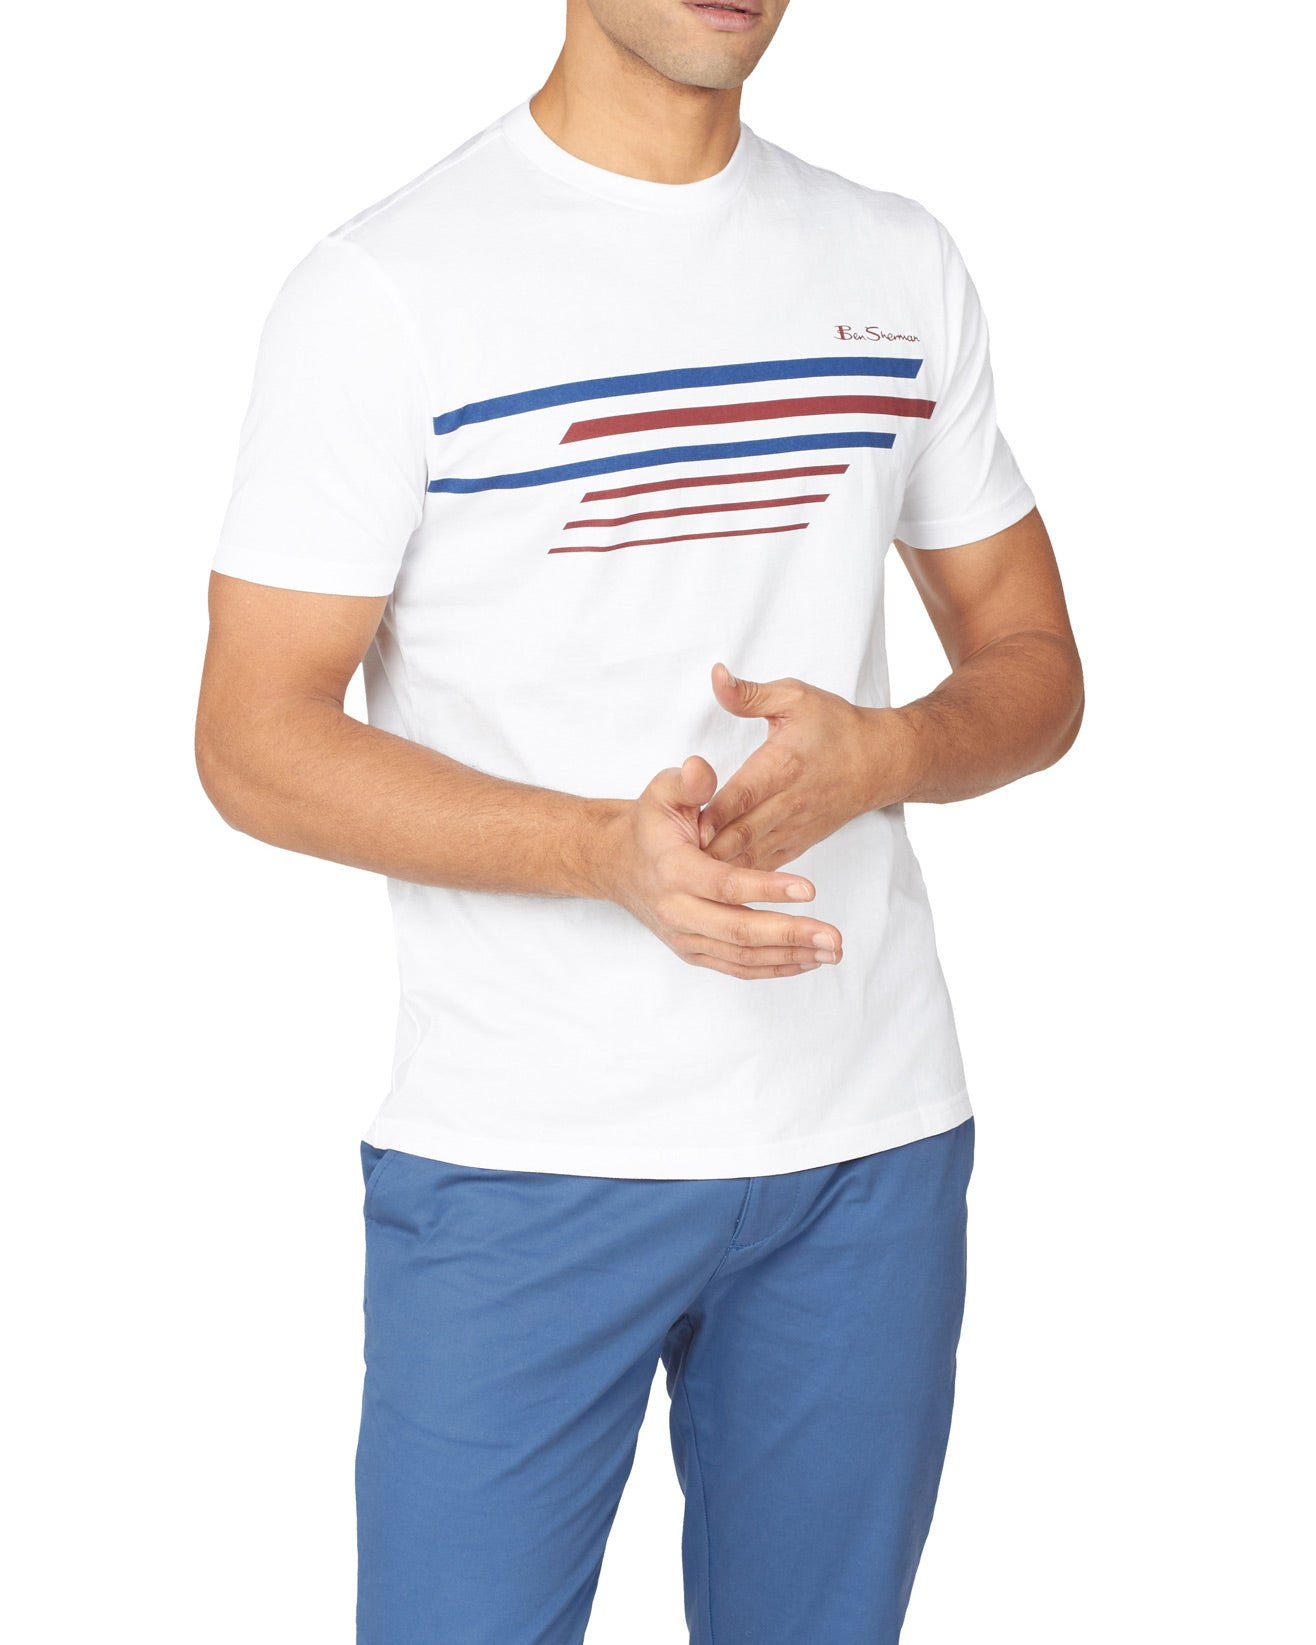 Sport Stripe Graphic Tee - White